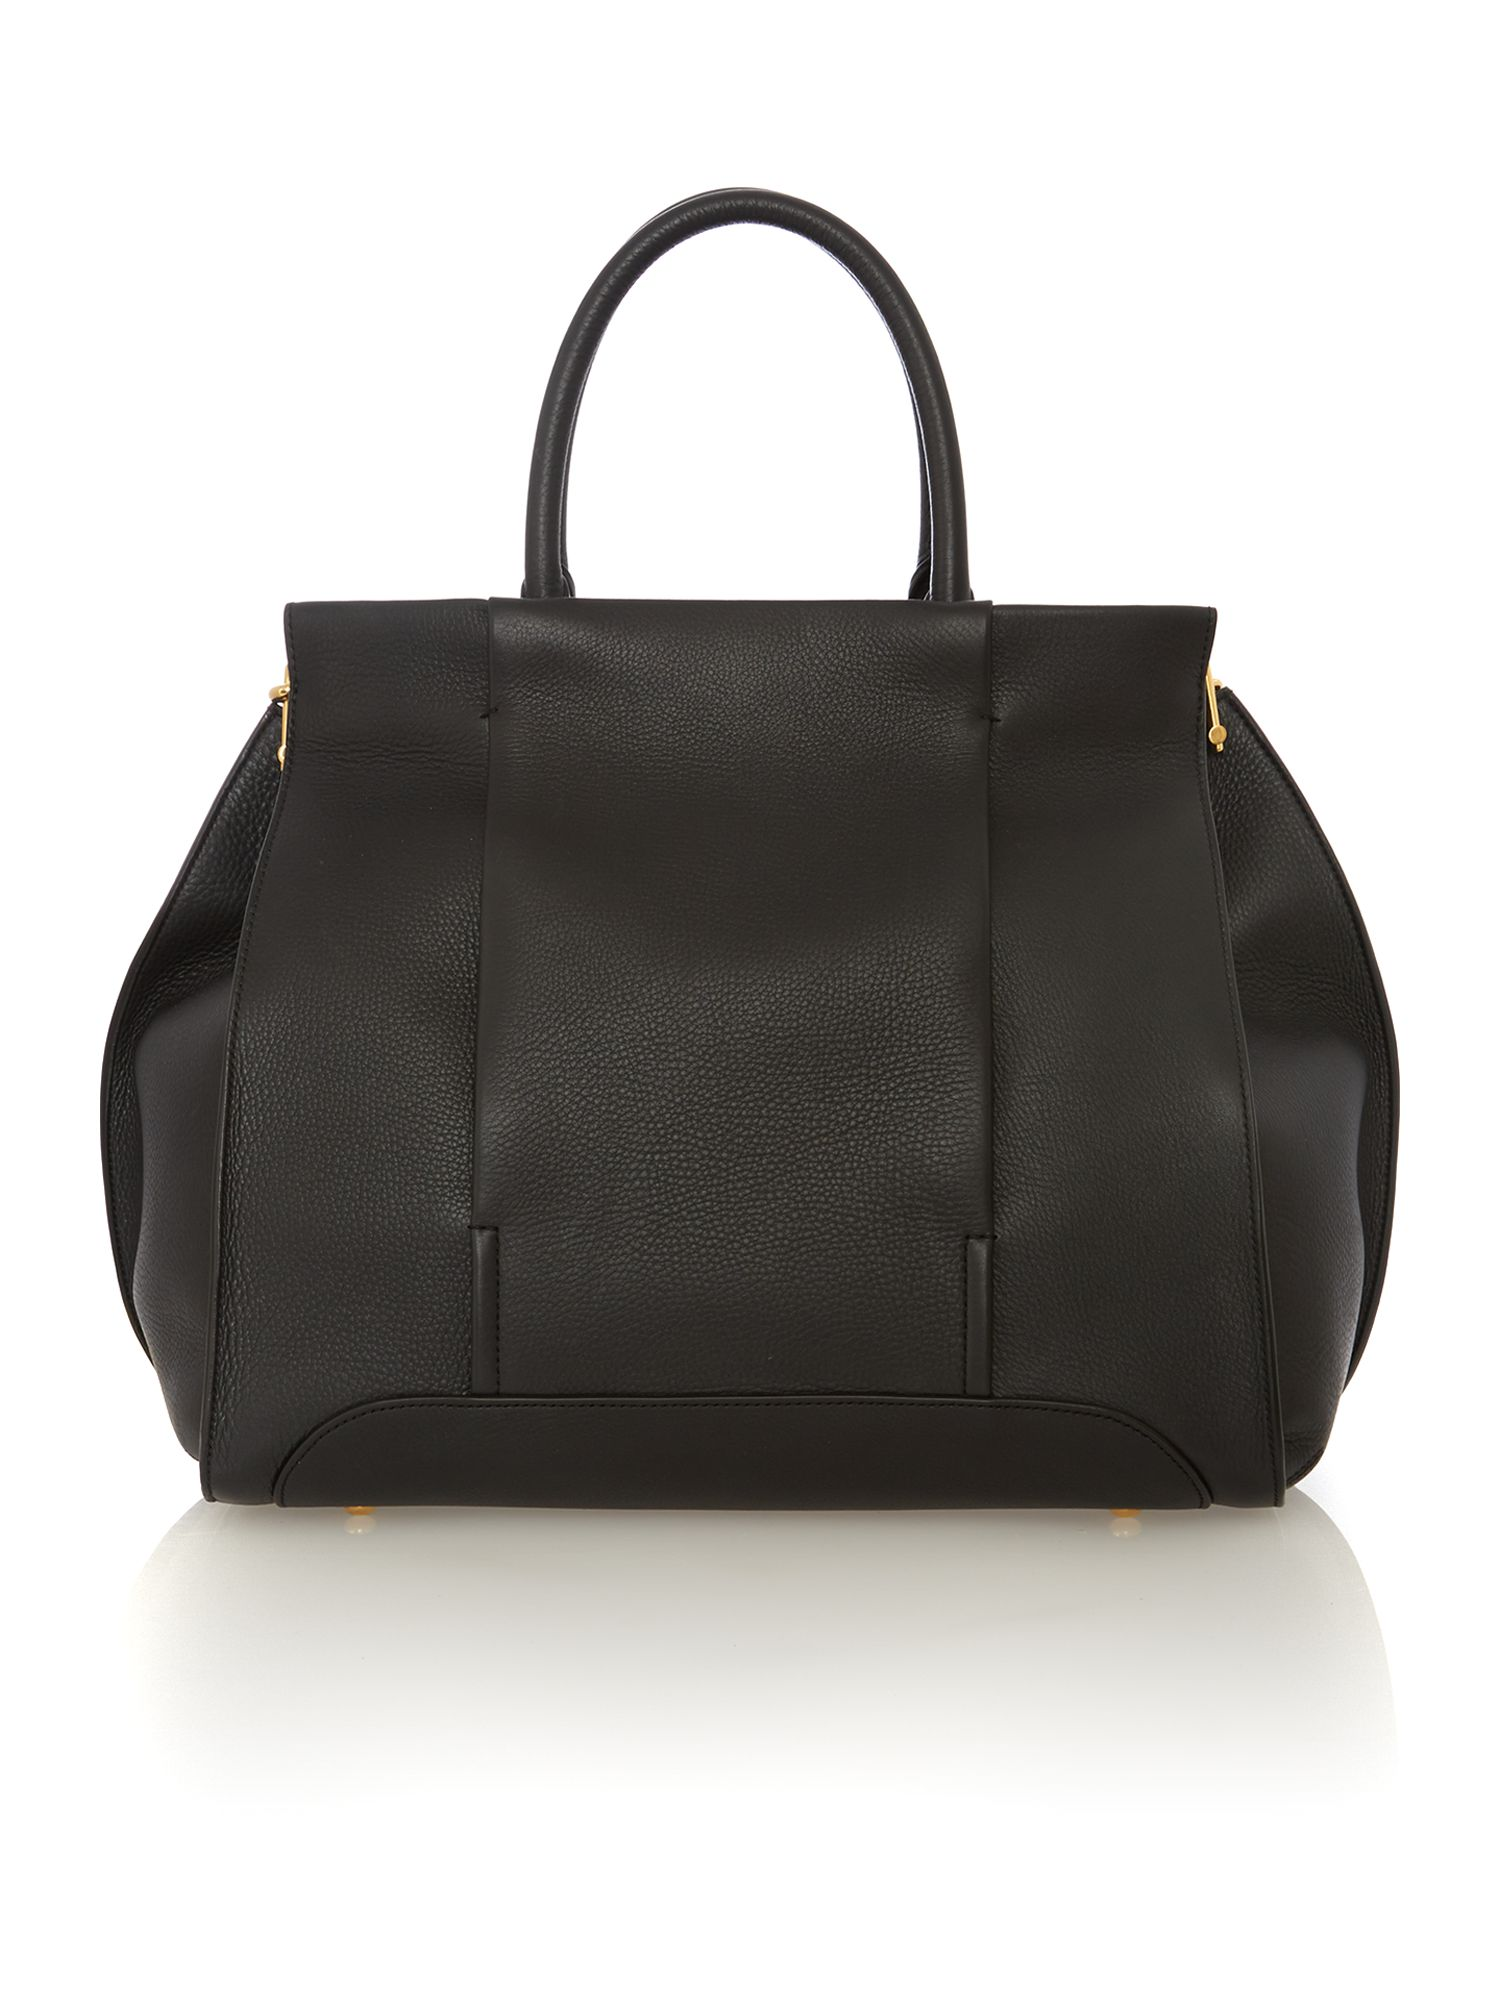 Edgar black tote bag